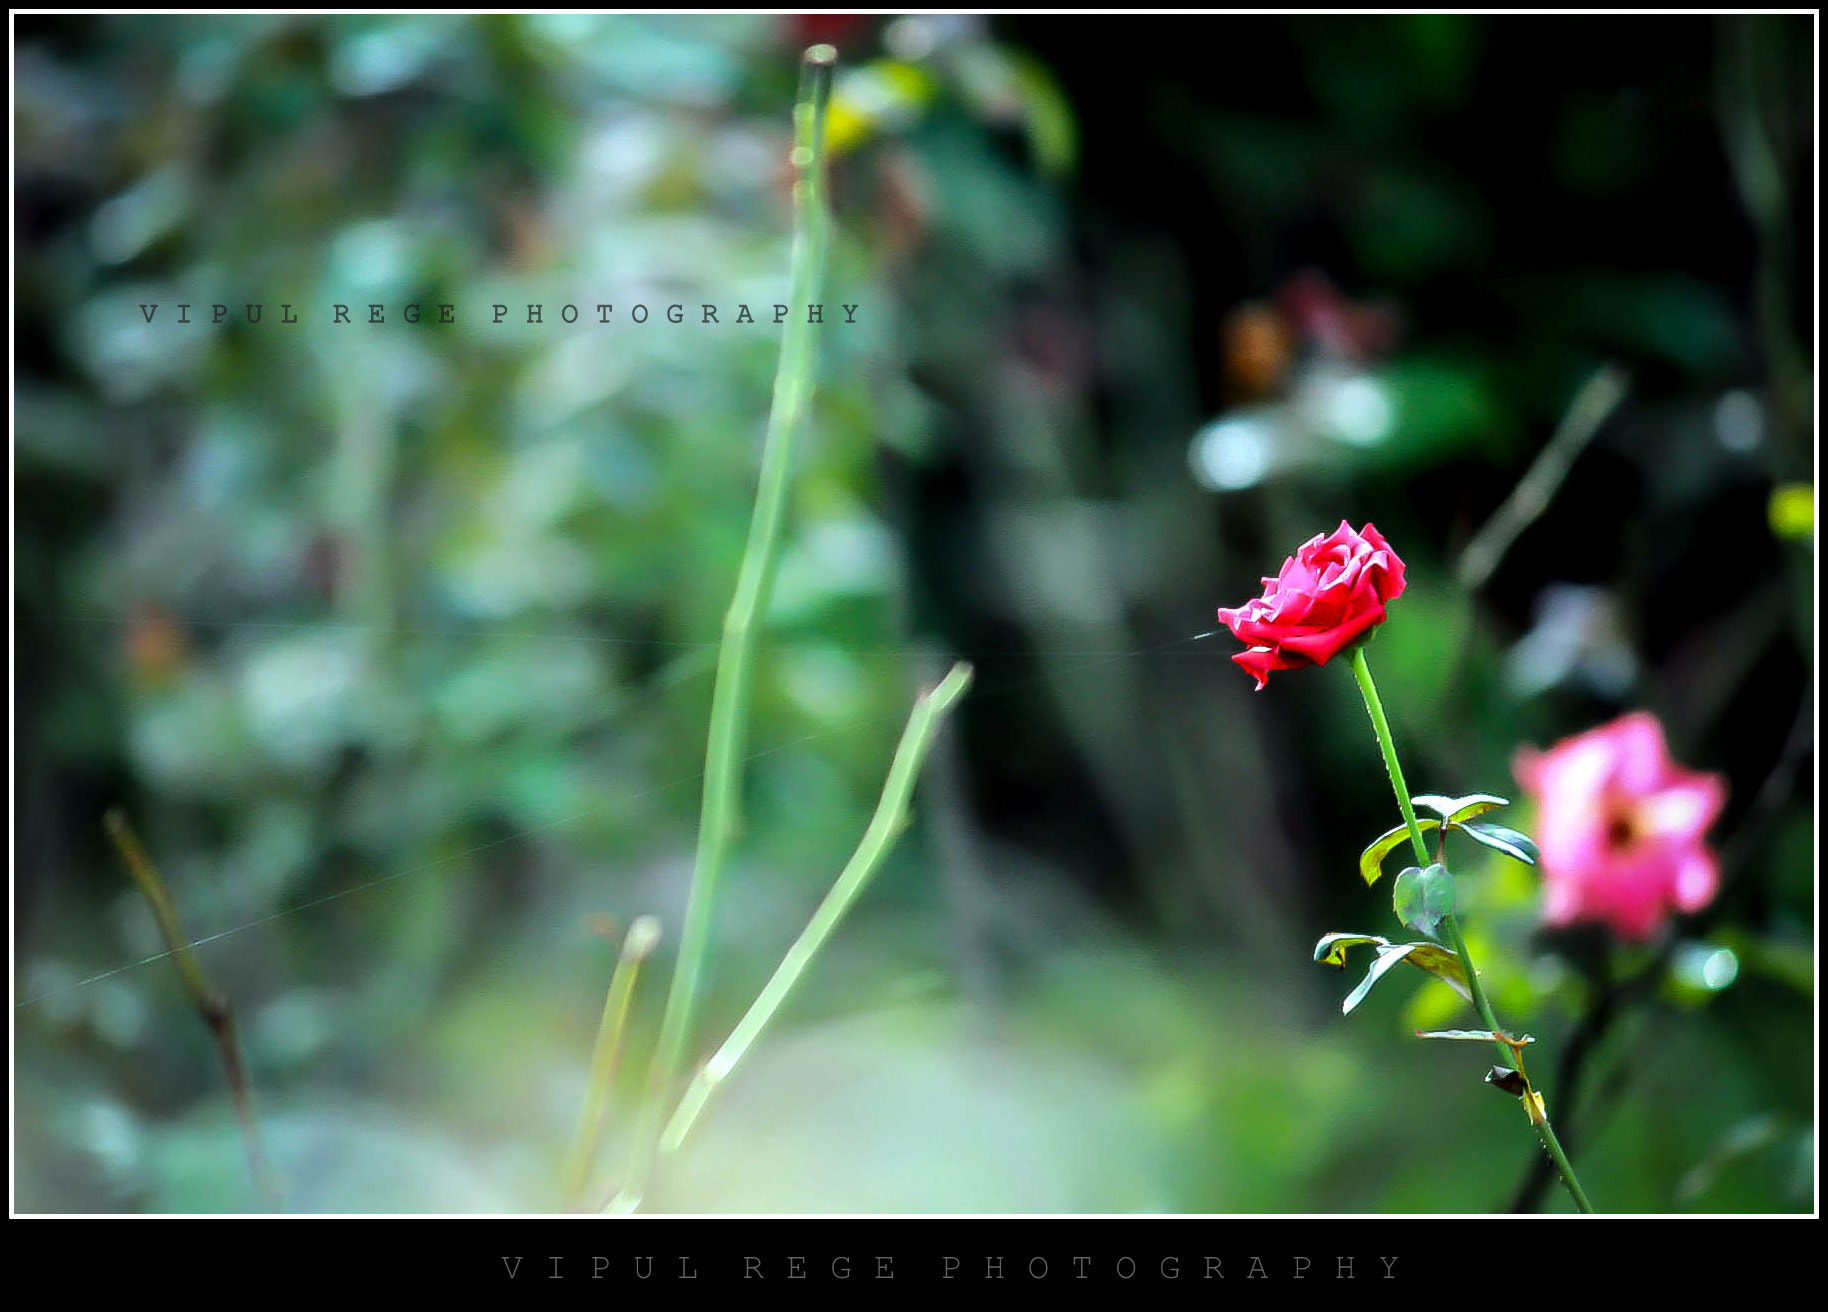 Photograph Rose by Vipul Rege on 500px